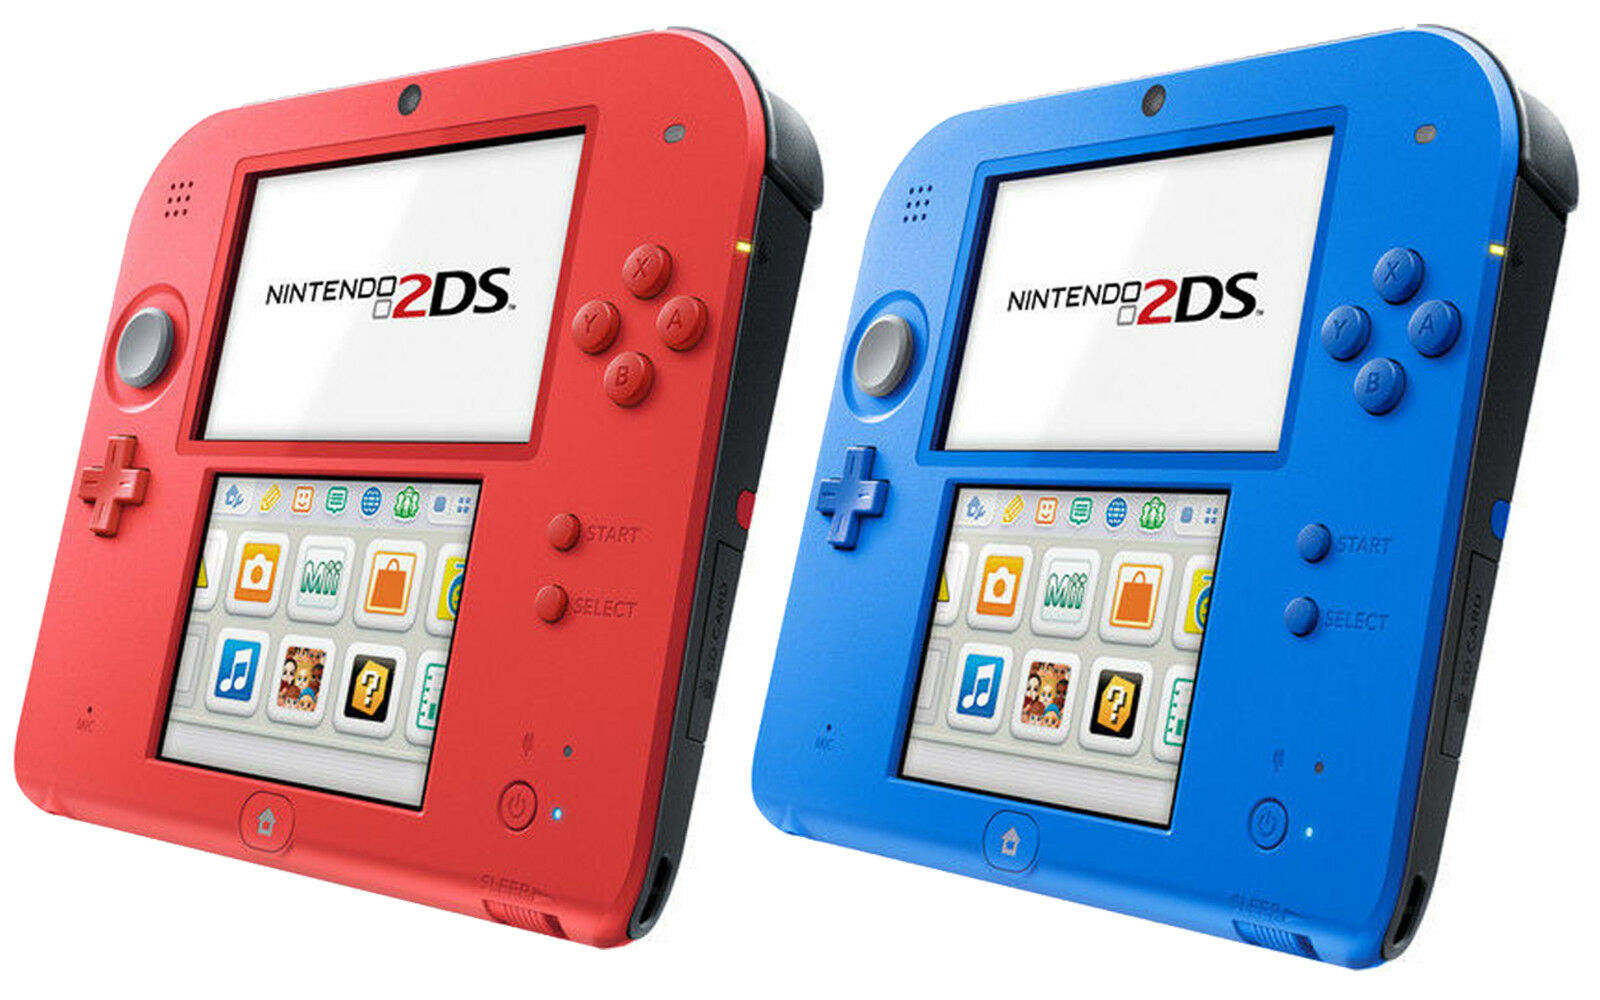 new nintendo 2ds mario kart 7 edition red or blue 109 99 picclick